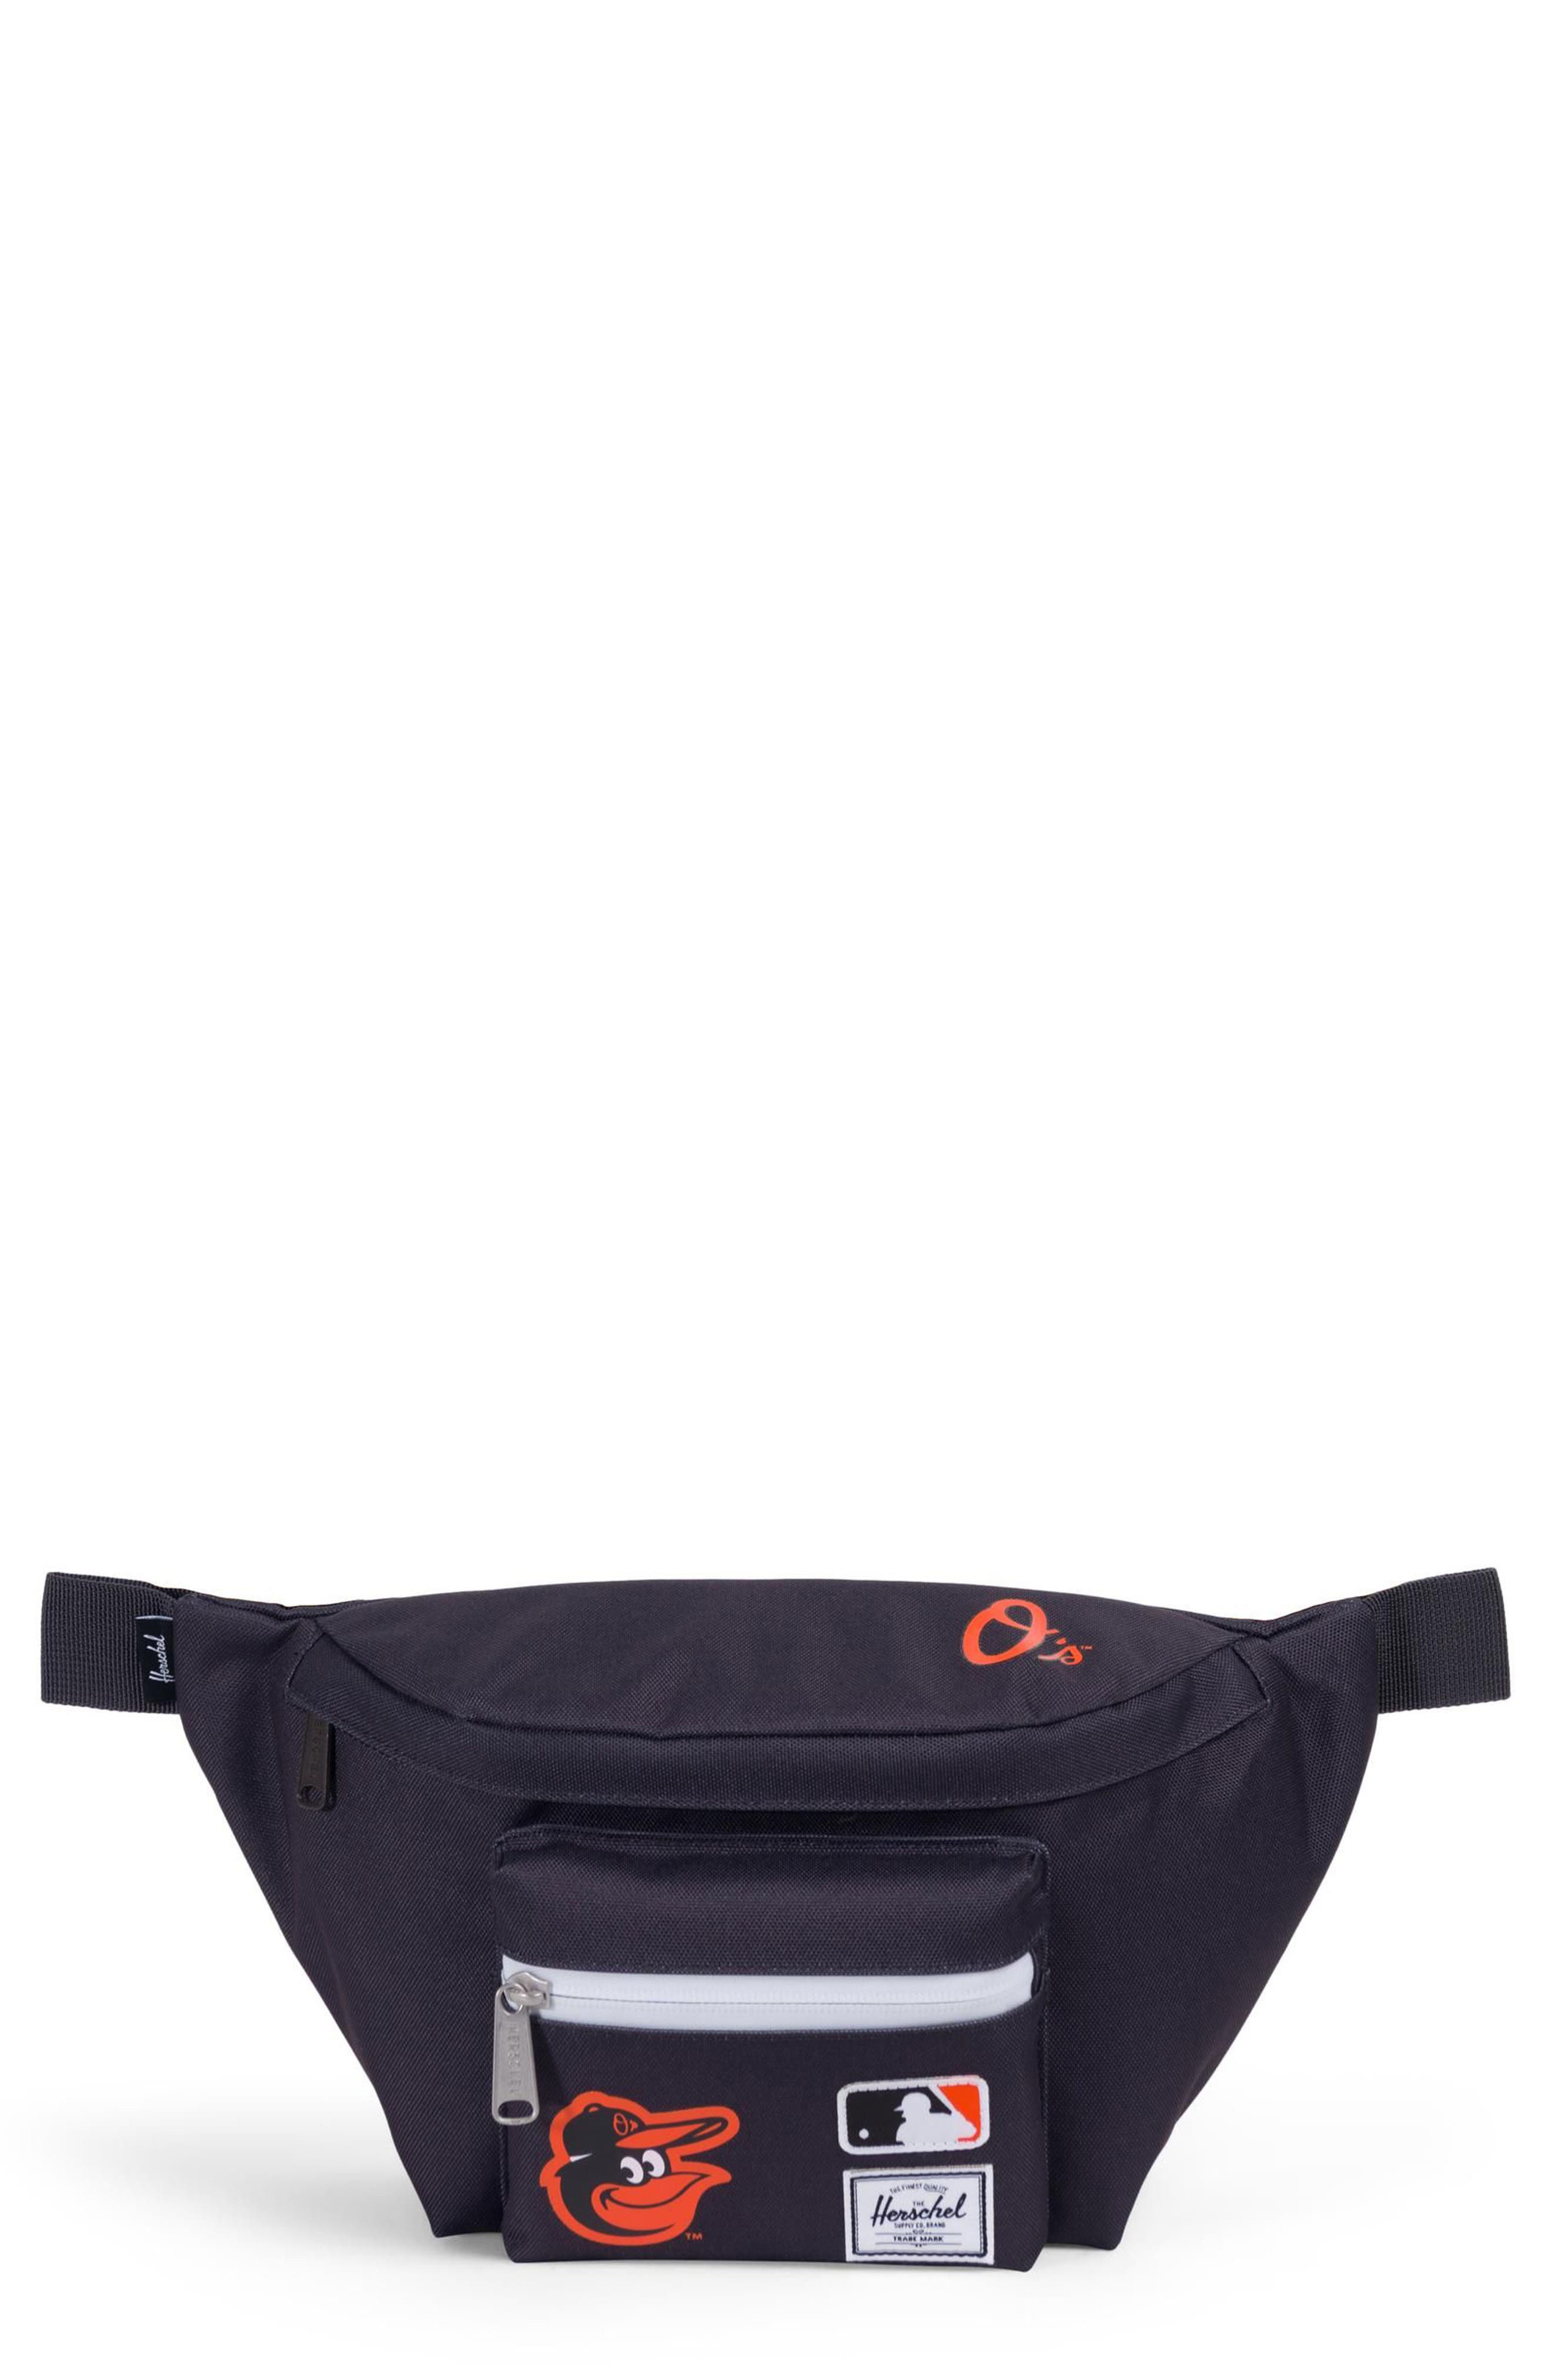 MLB American League Hip Pack,                         Main,                         color, 001